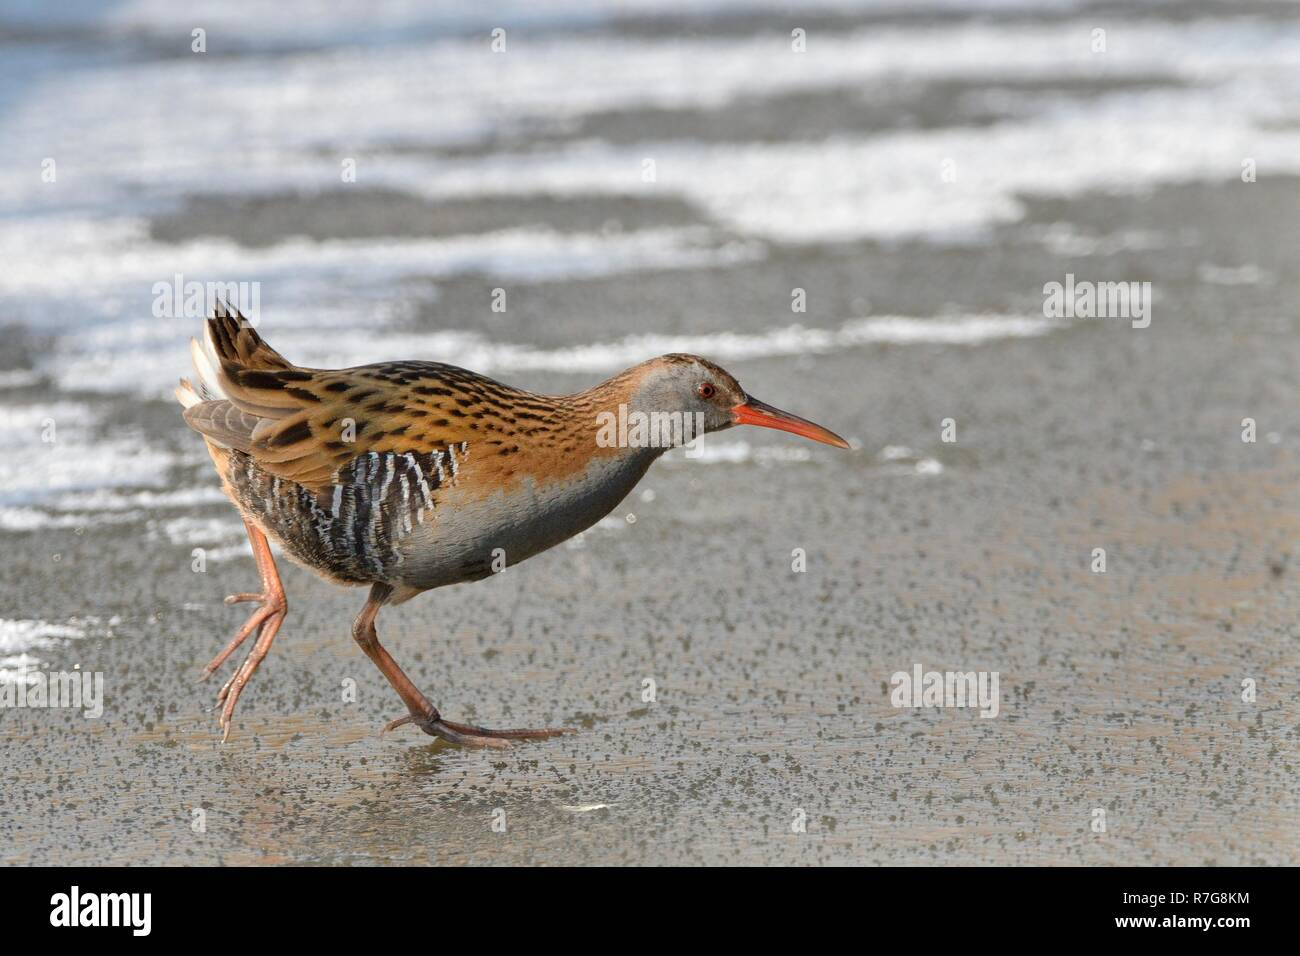 Water rail (Rallus aquaticus) walking across a frozen, snow dusted pond, Gloucestershire, UK, February. - Stock Image